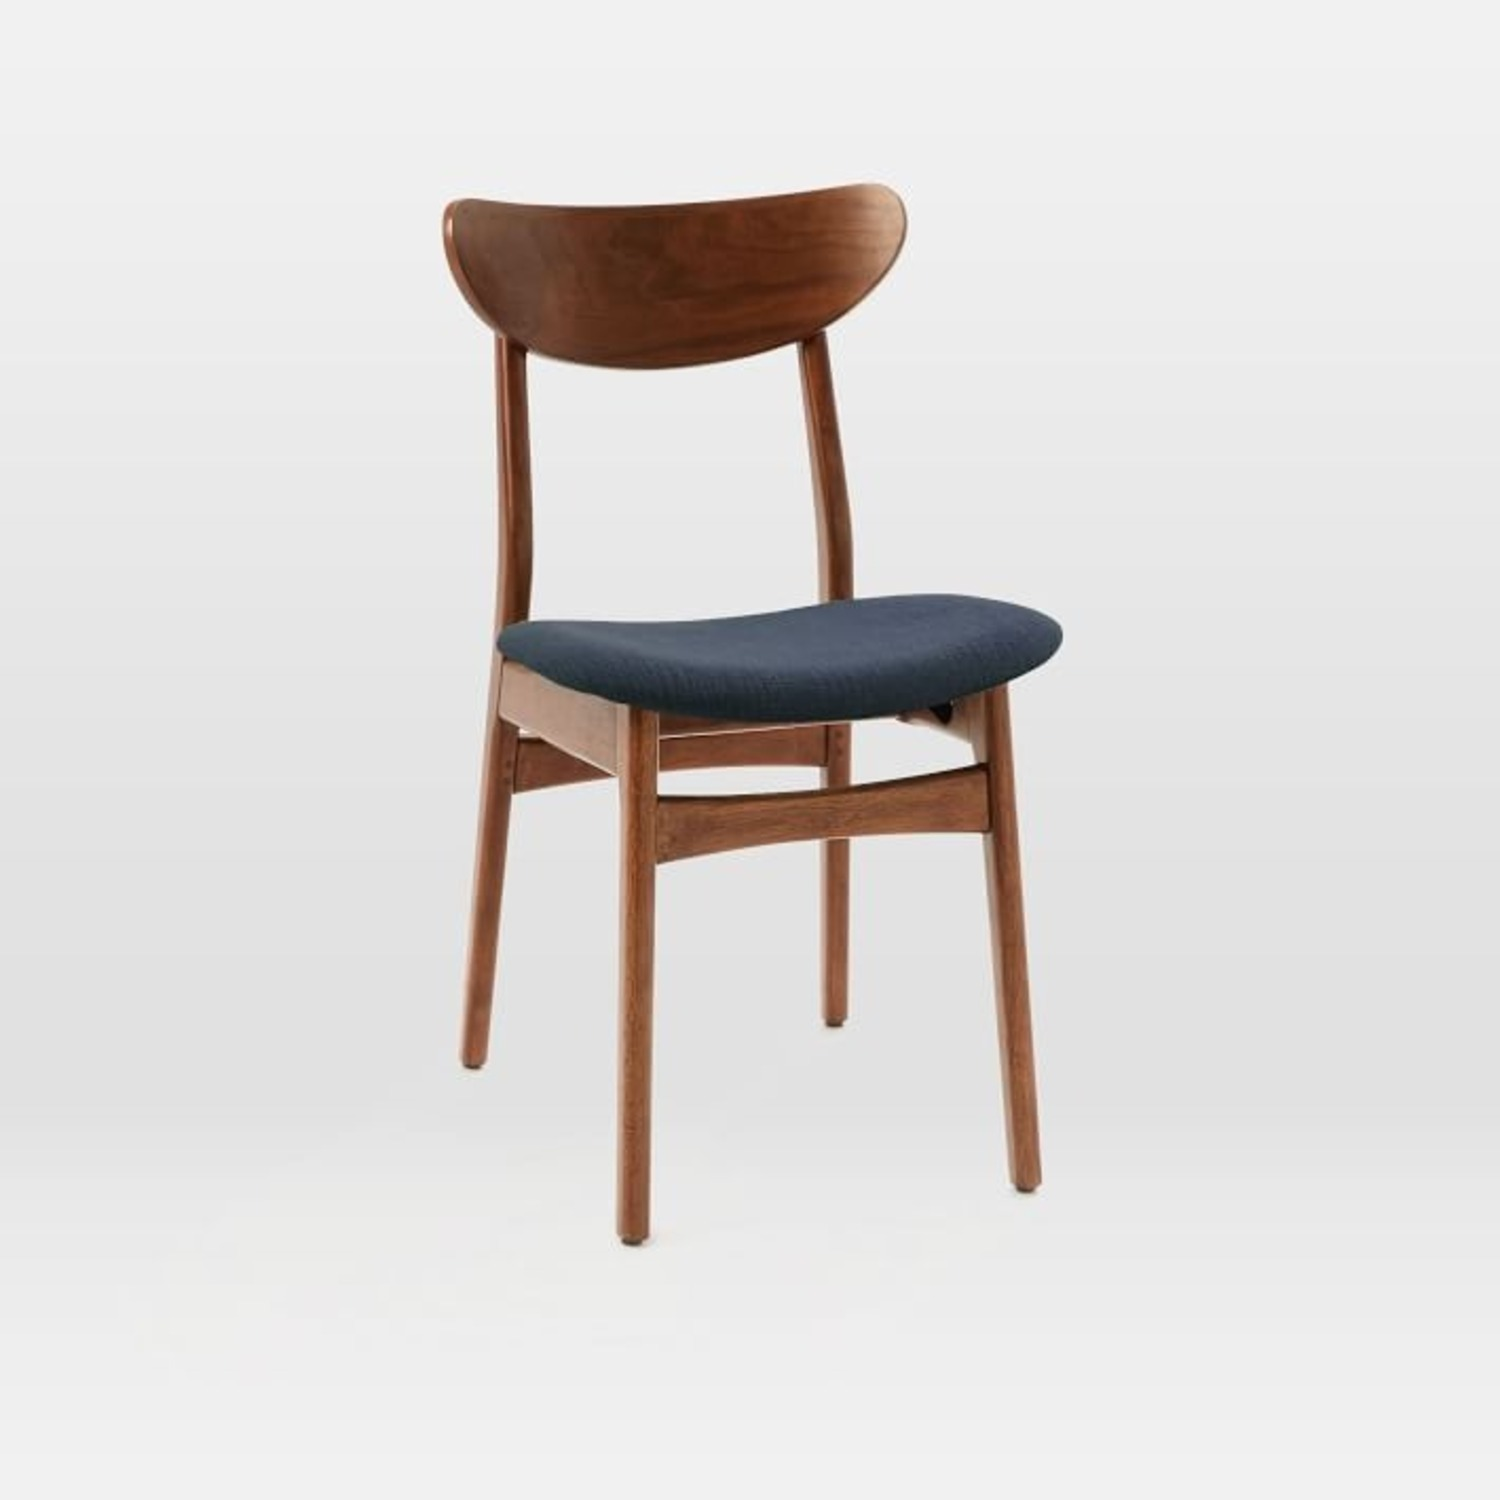 West Elm Classic Café Upholstered Dining Chair - image-1